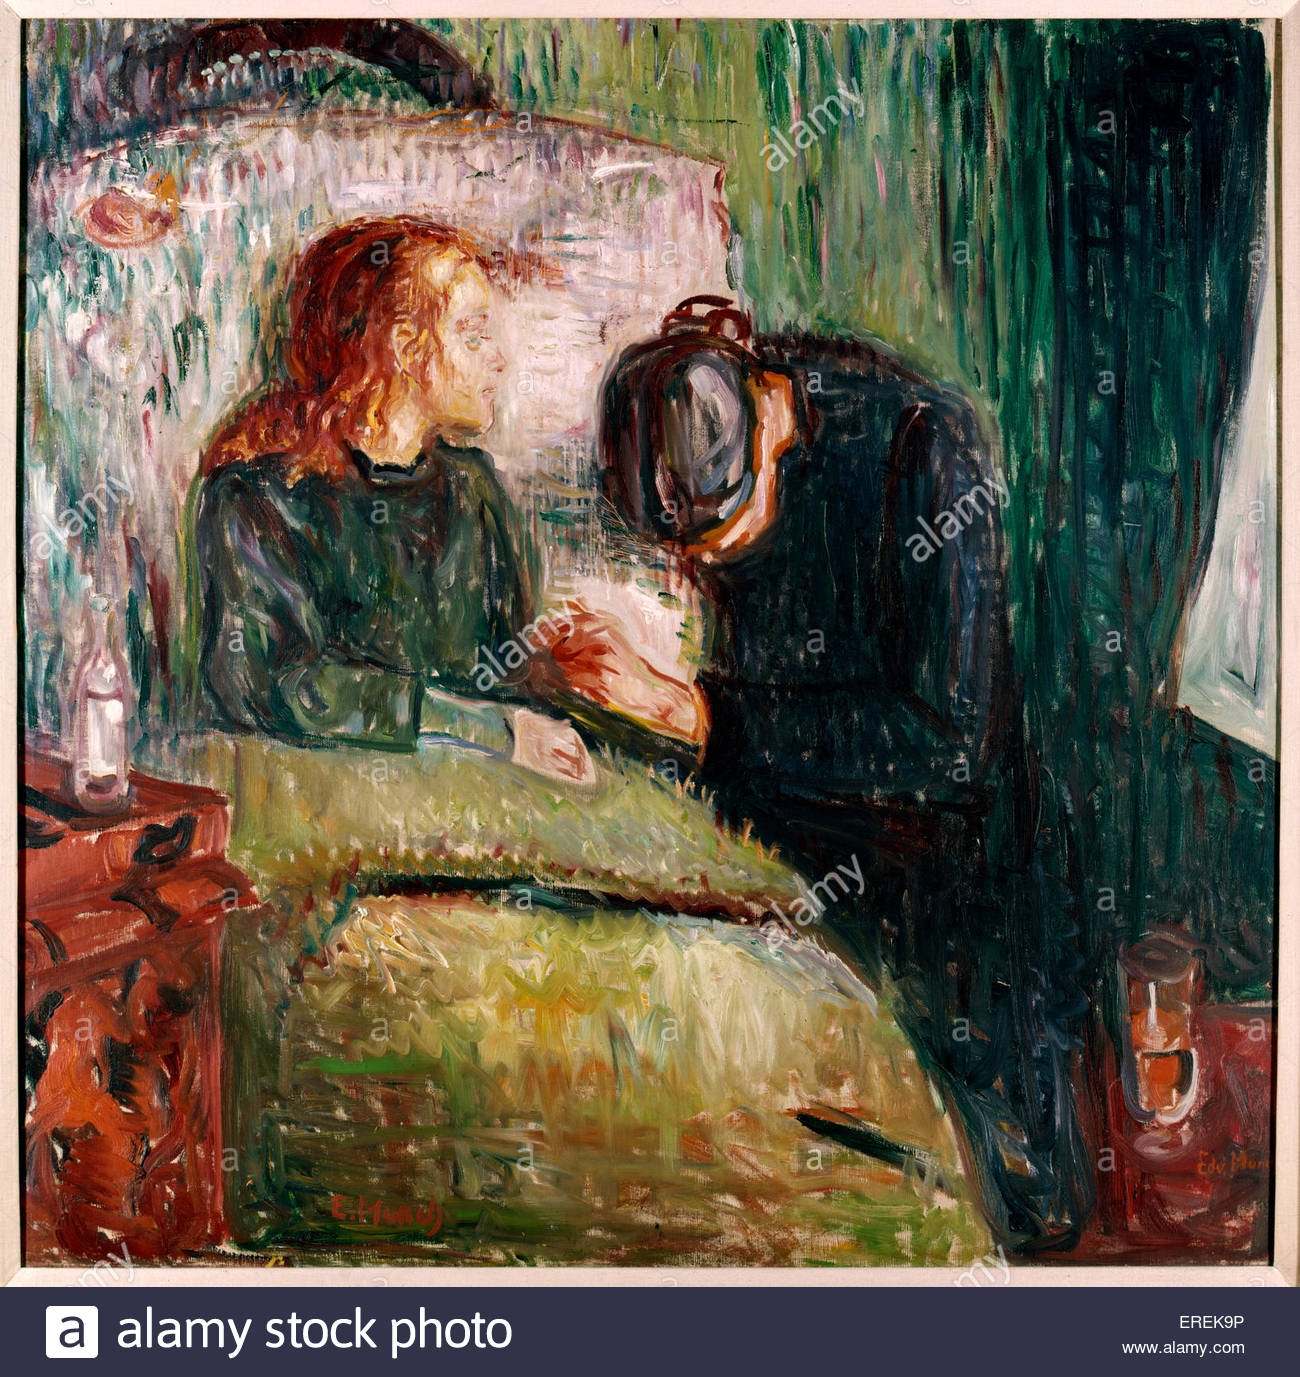 The Sick Child  (Det syke barn) by Edward Munch. Oil on canvas, 1907. (Tate Collection). - Stock Image